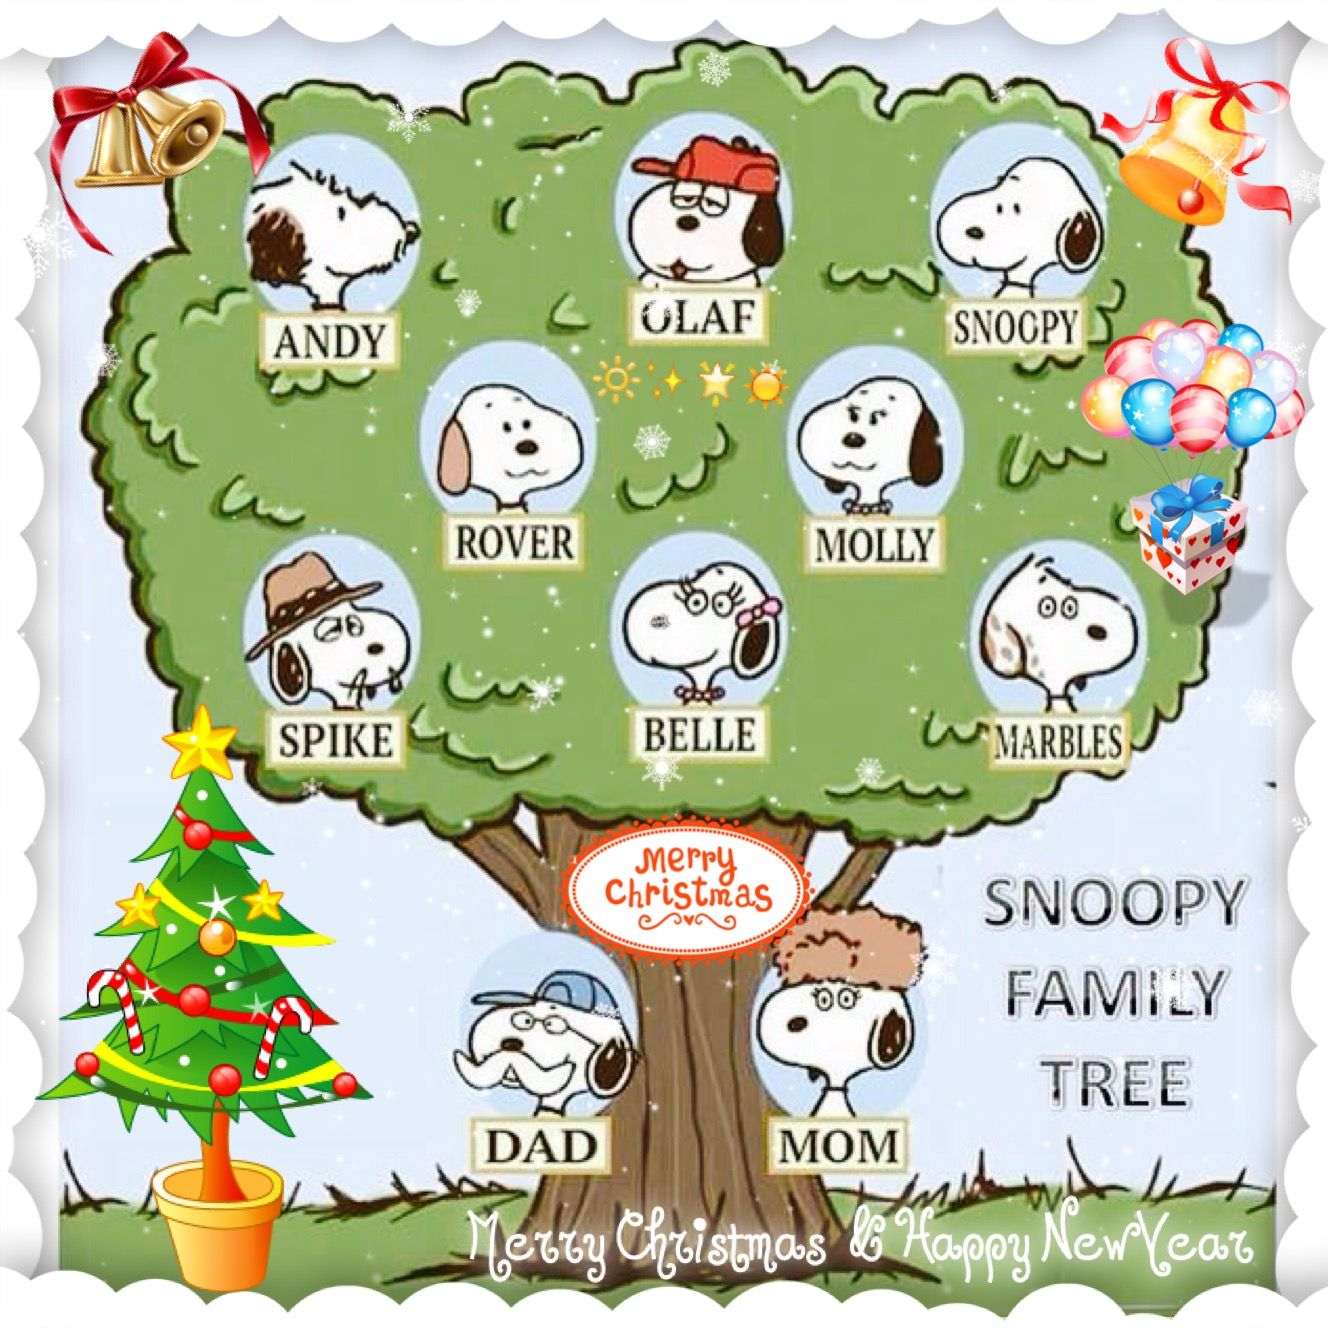 Snoopy Family Tree With Images